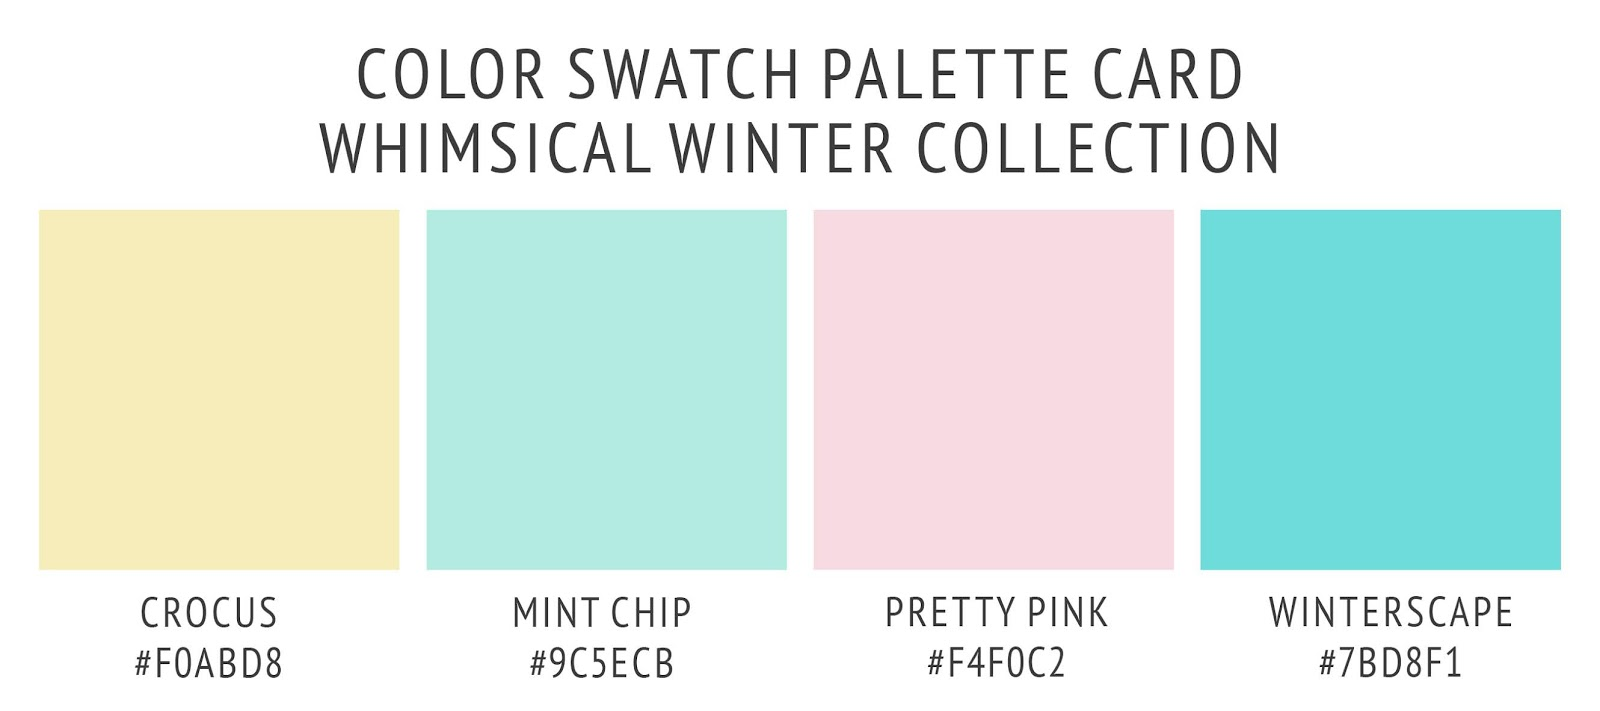 Whimsical Winter collection's color palette card. With swatches and color hex codes. In mint chip green, crocus yellow, pretty pastel pink, and winterscape teal color scheme.